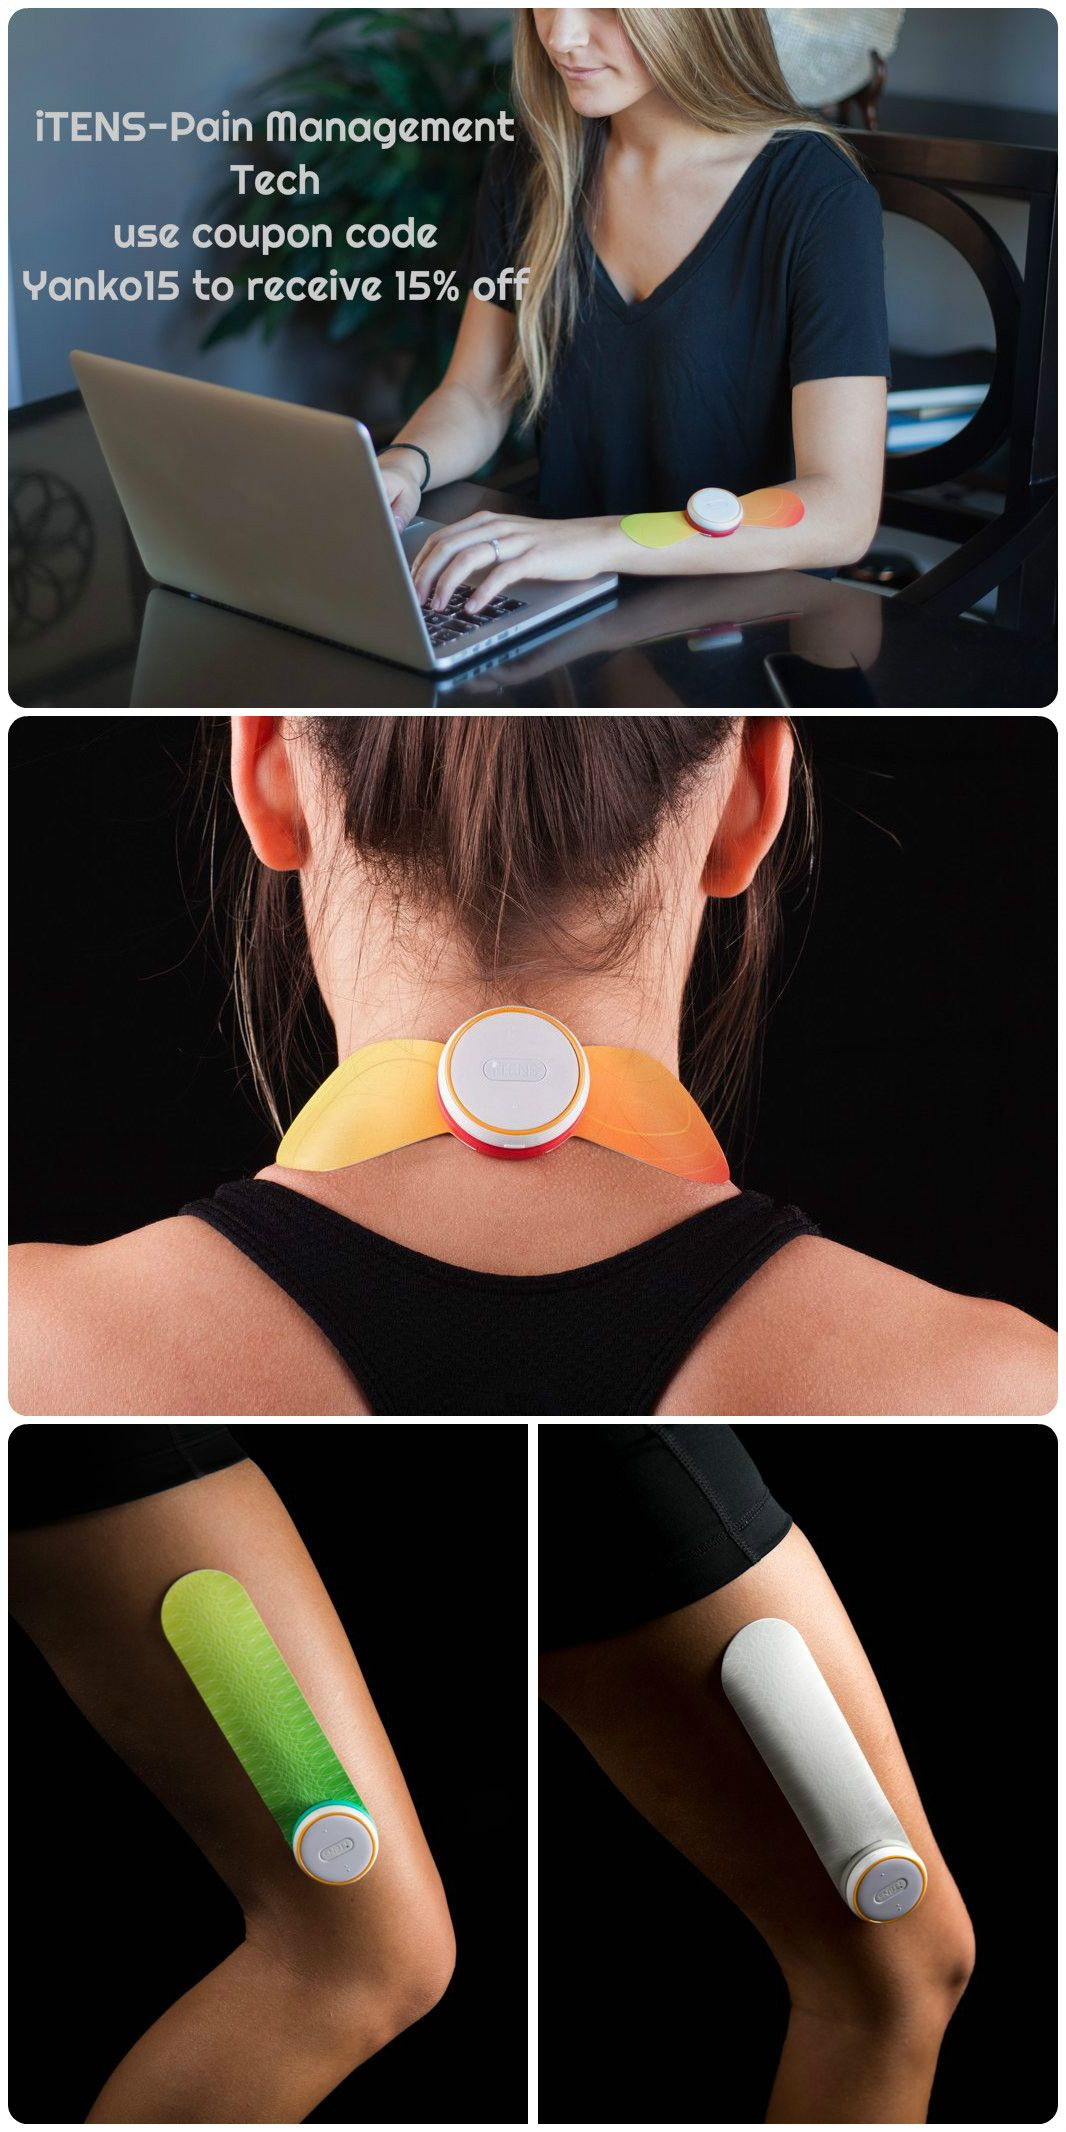 ITENS OFFERS PAIN MANAGEMENT VIA WEARABLE TECHNOLOGY- Simply use the coupon code: Yanko15 –…